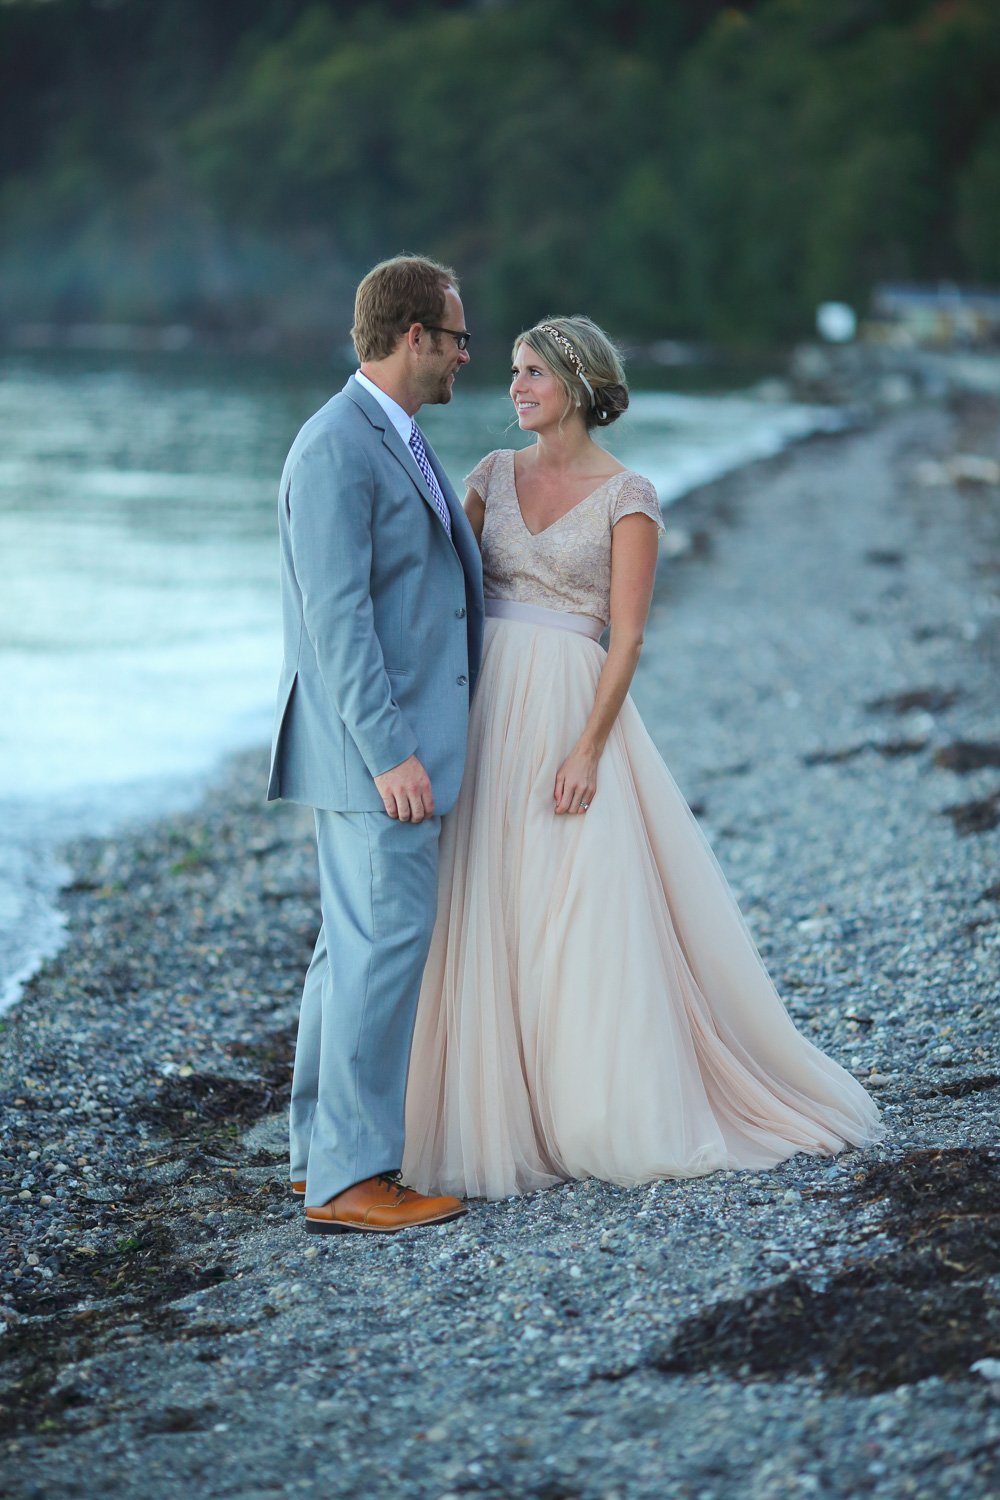 Wedding Guemes Island Resort Guemes Island Washington 31.jpg